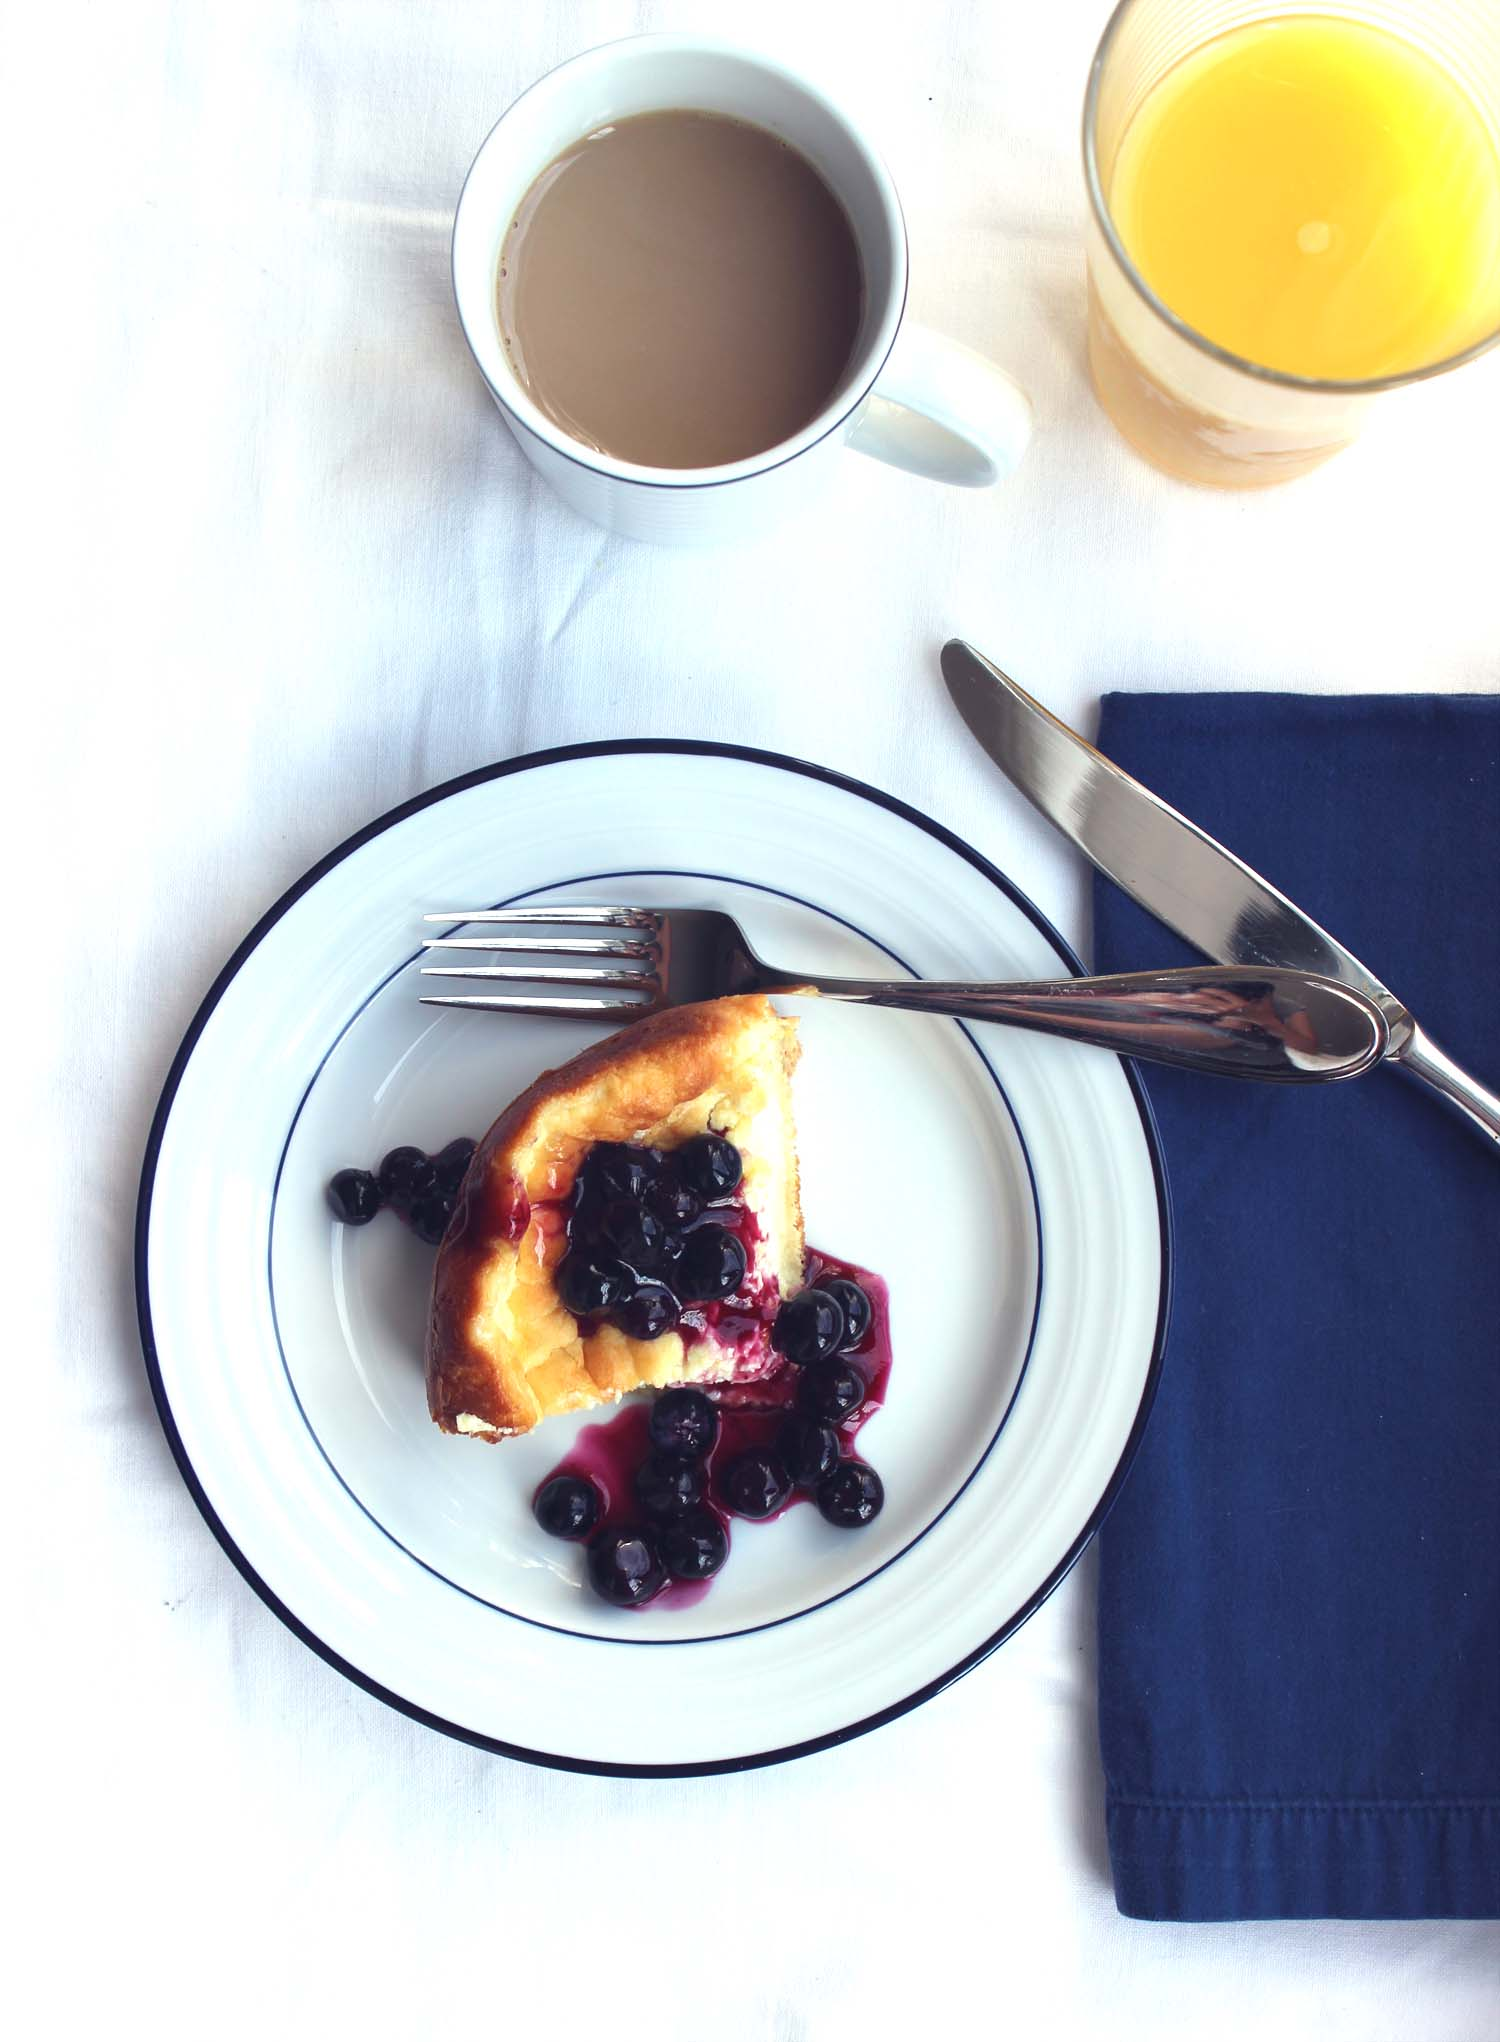 Baked Blintzes with Blueberry Sauce   | Image:   Laura Messersmith